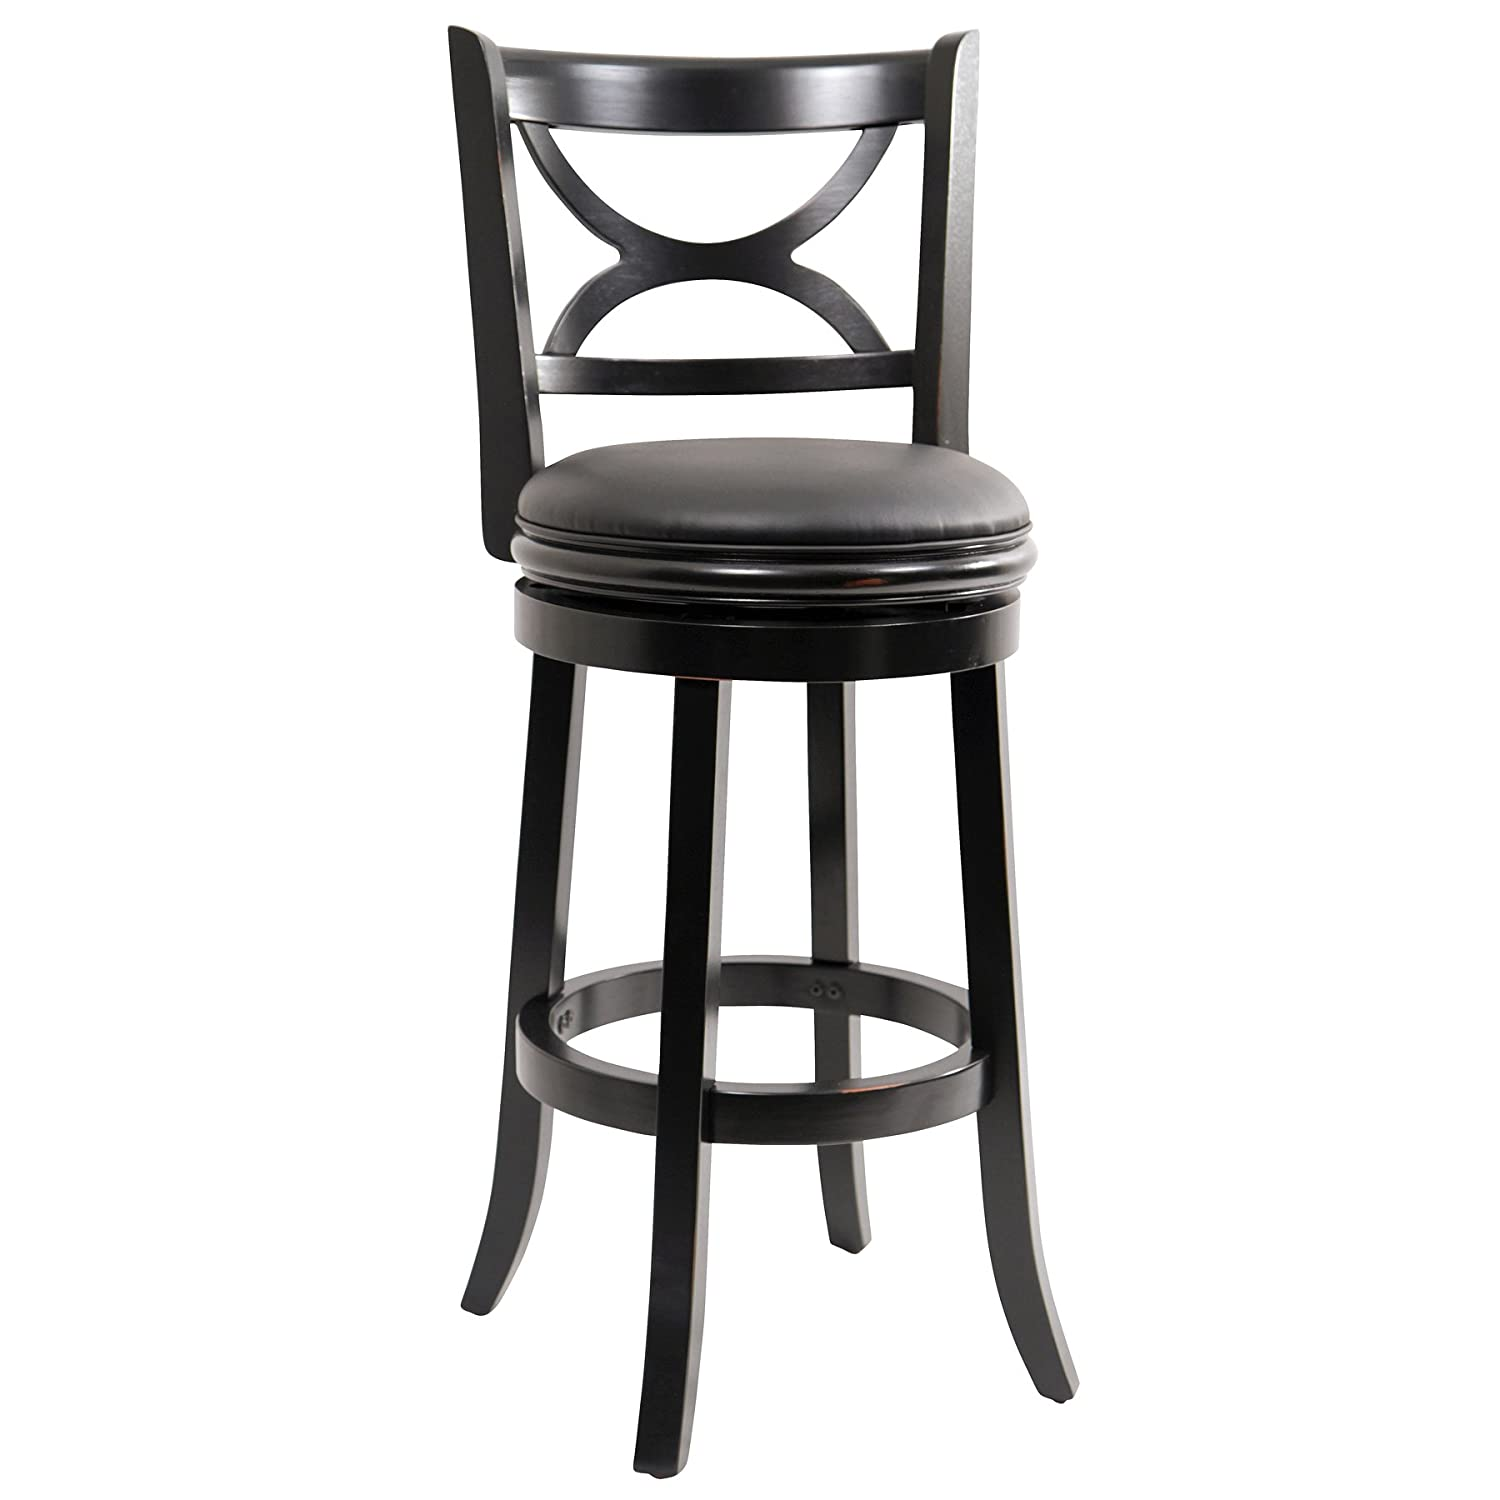 Amazon.com Boraam 45729 Florence Bar Height Swivel Stool 29-Inch Distressed Black Kitchen u0026 Dining  sc 1 st  Amazon.com : wooden swivel bar stool - islam-shia.org